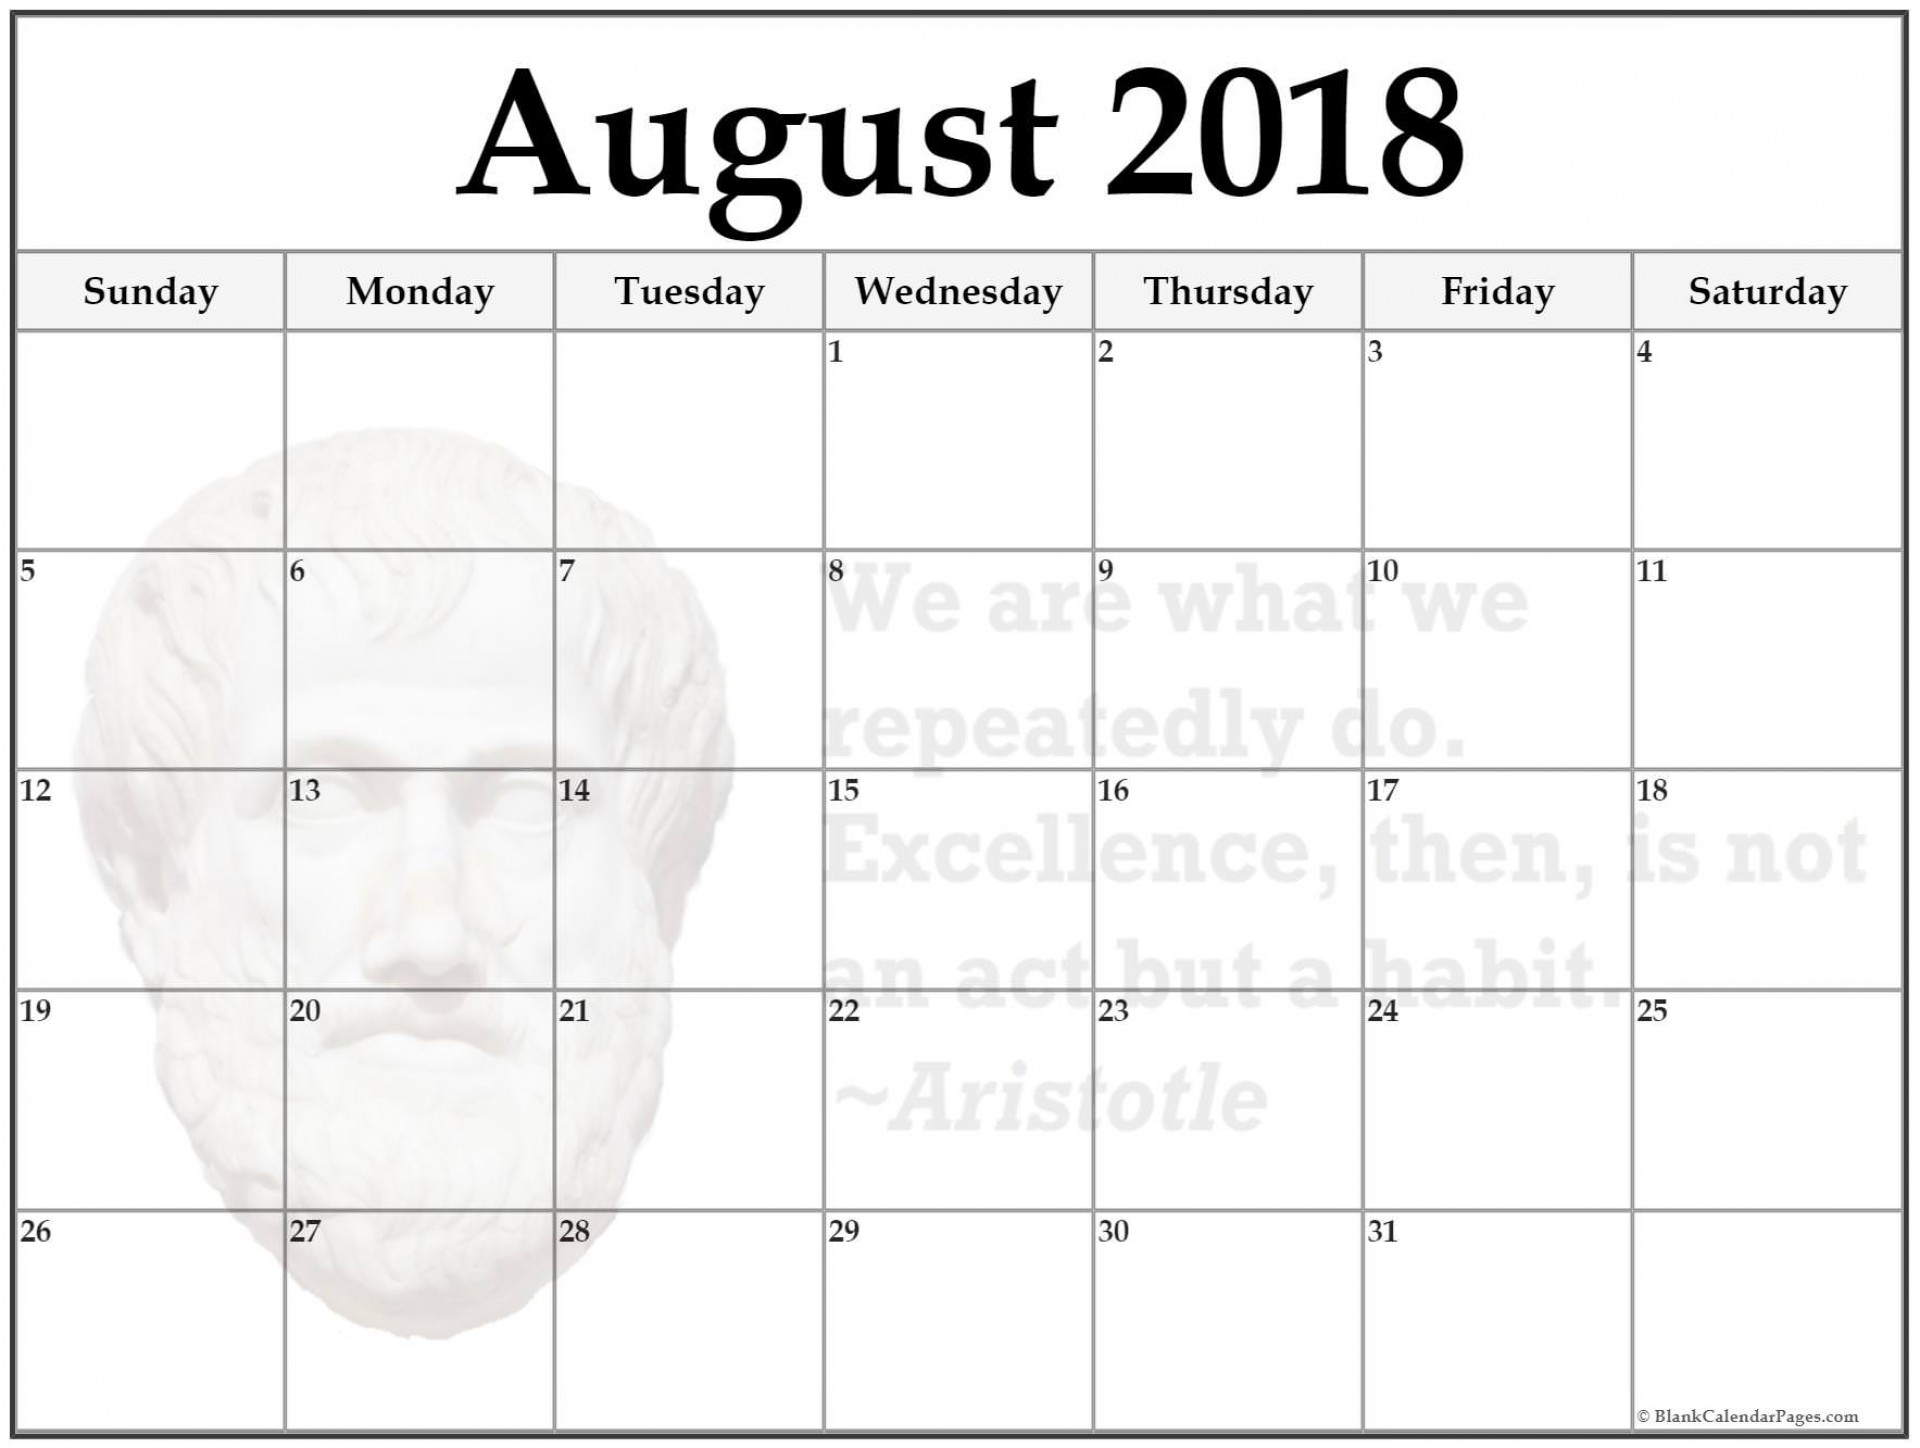 030 Week Calendar August Printable Phenomenal 2018 Word September intended for August Printable Calendar Weekly Template